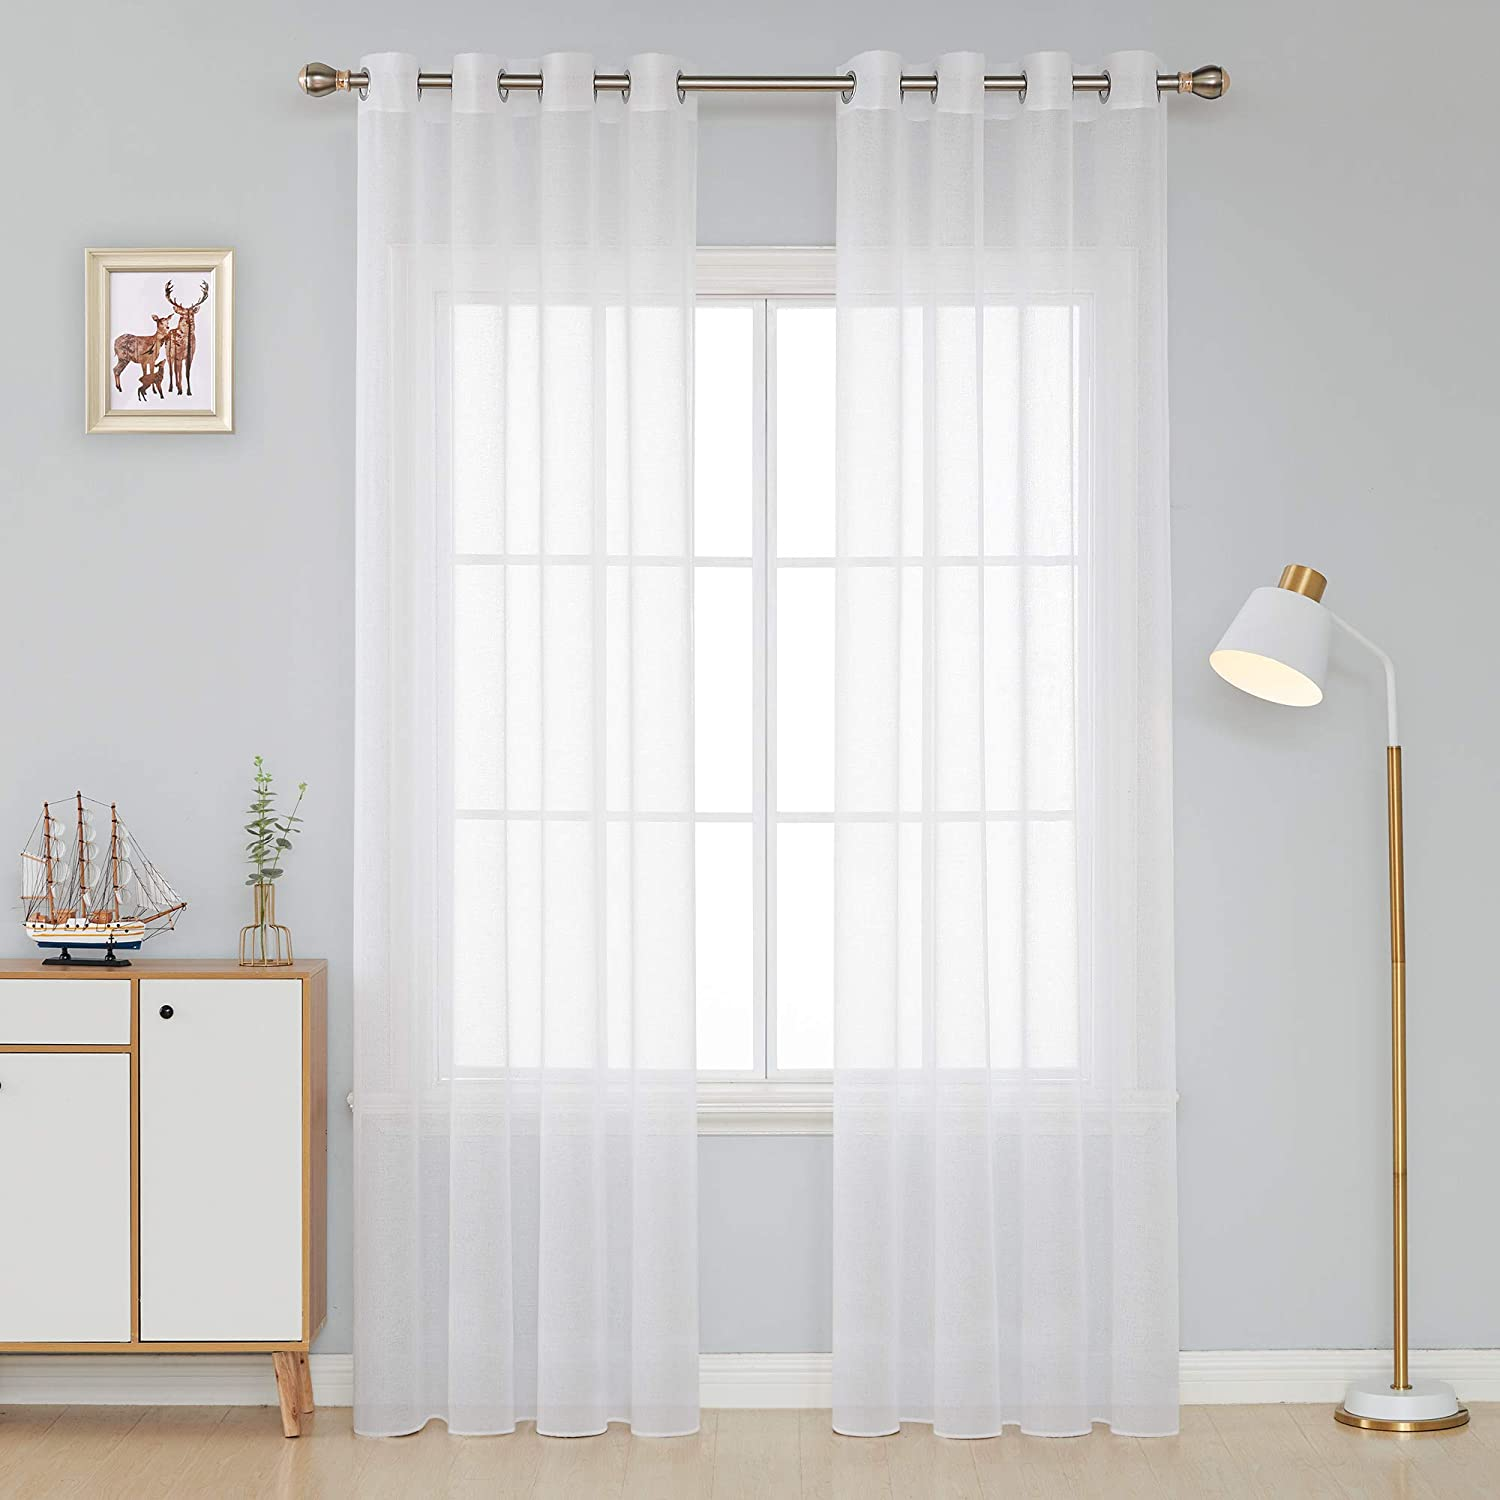 Amazon.com: Deconovo Sheer Curtains Transparent Grommet Top Voile